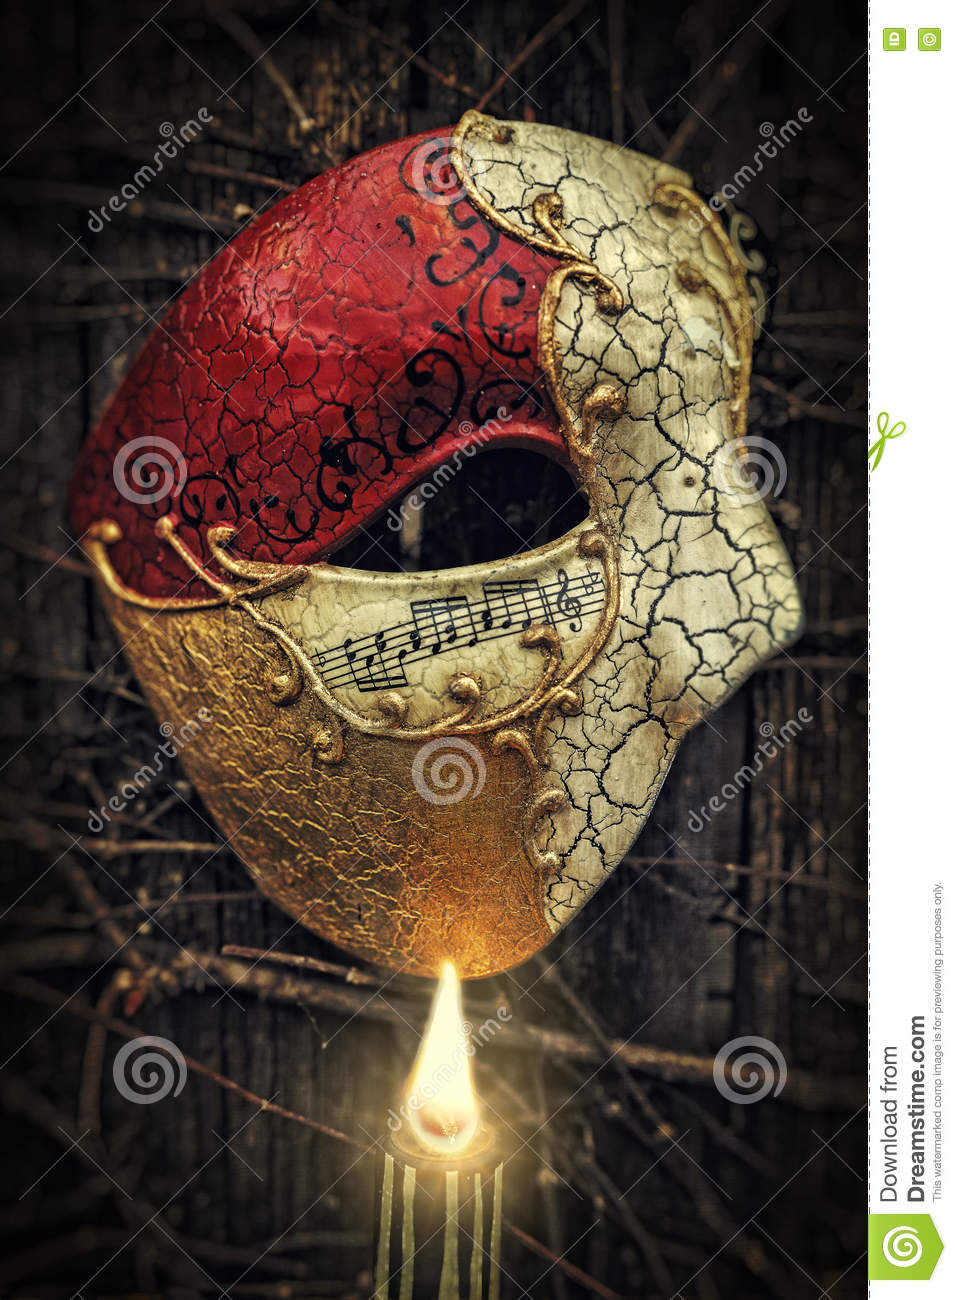 Masquerade - Phantom Of The Opera Mask Stock Photo - Image of